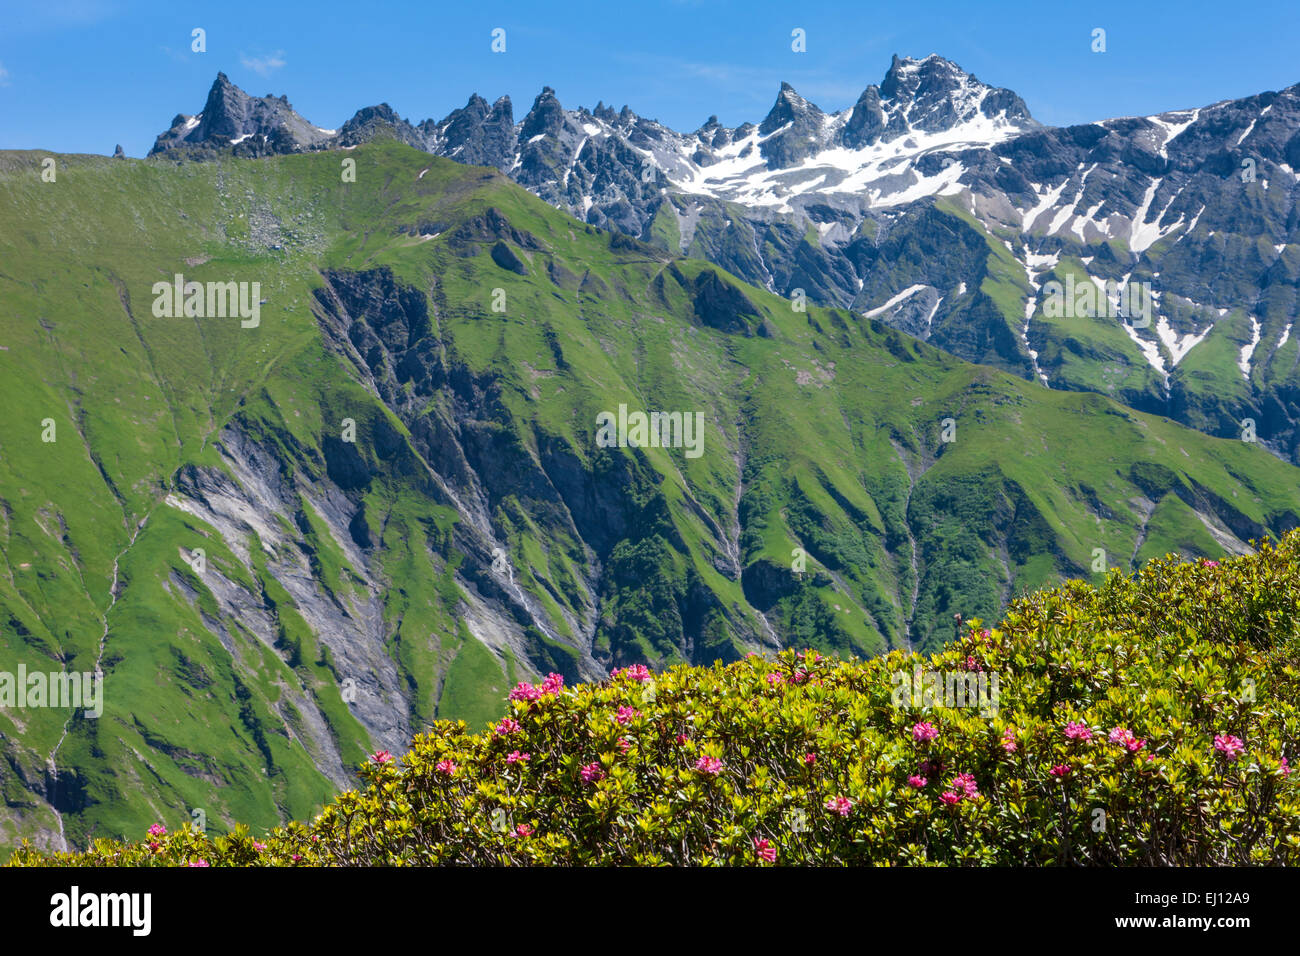 View, horn, Switzerland, Europe, canton St. Gallen, area of Sargans, Weisstannental, gray horns, Alpine roses - Stock Image